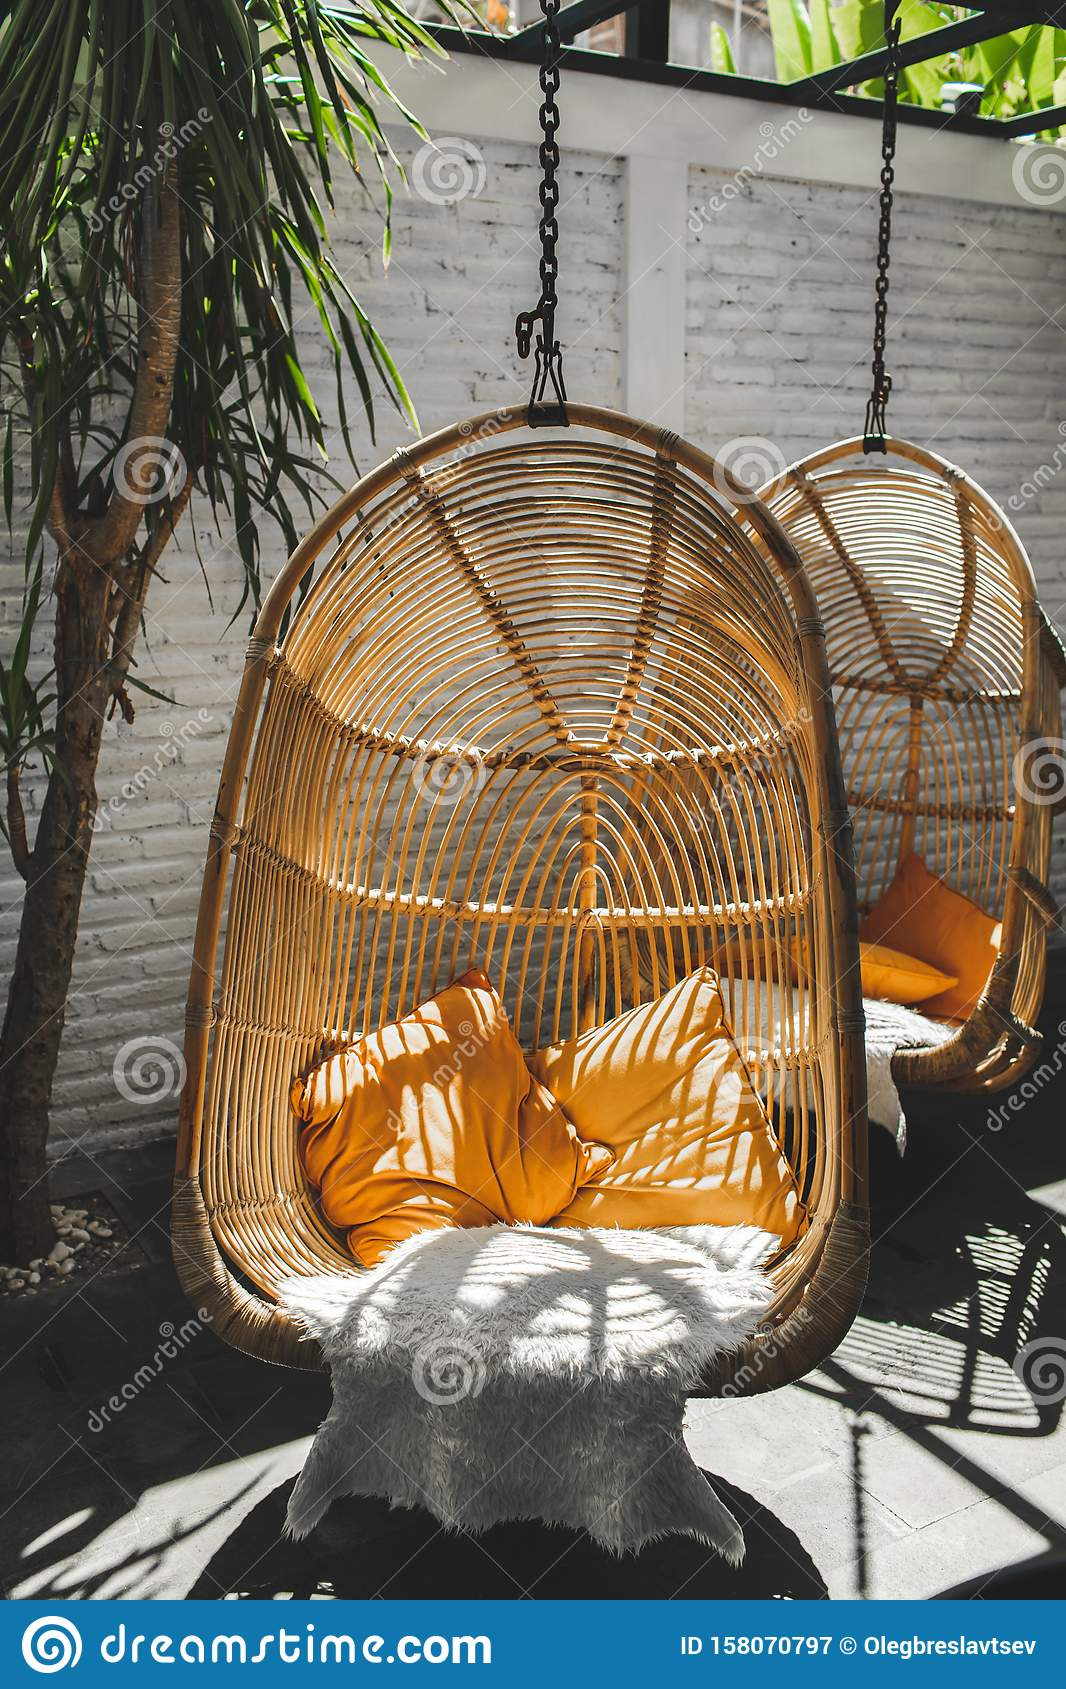 Wicker Rattan Hanging Chair In Loft Hipster Cafe Stock ...